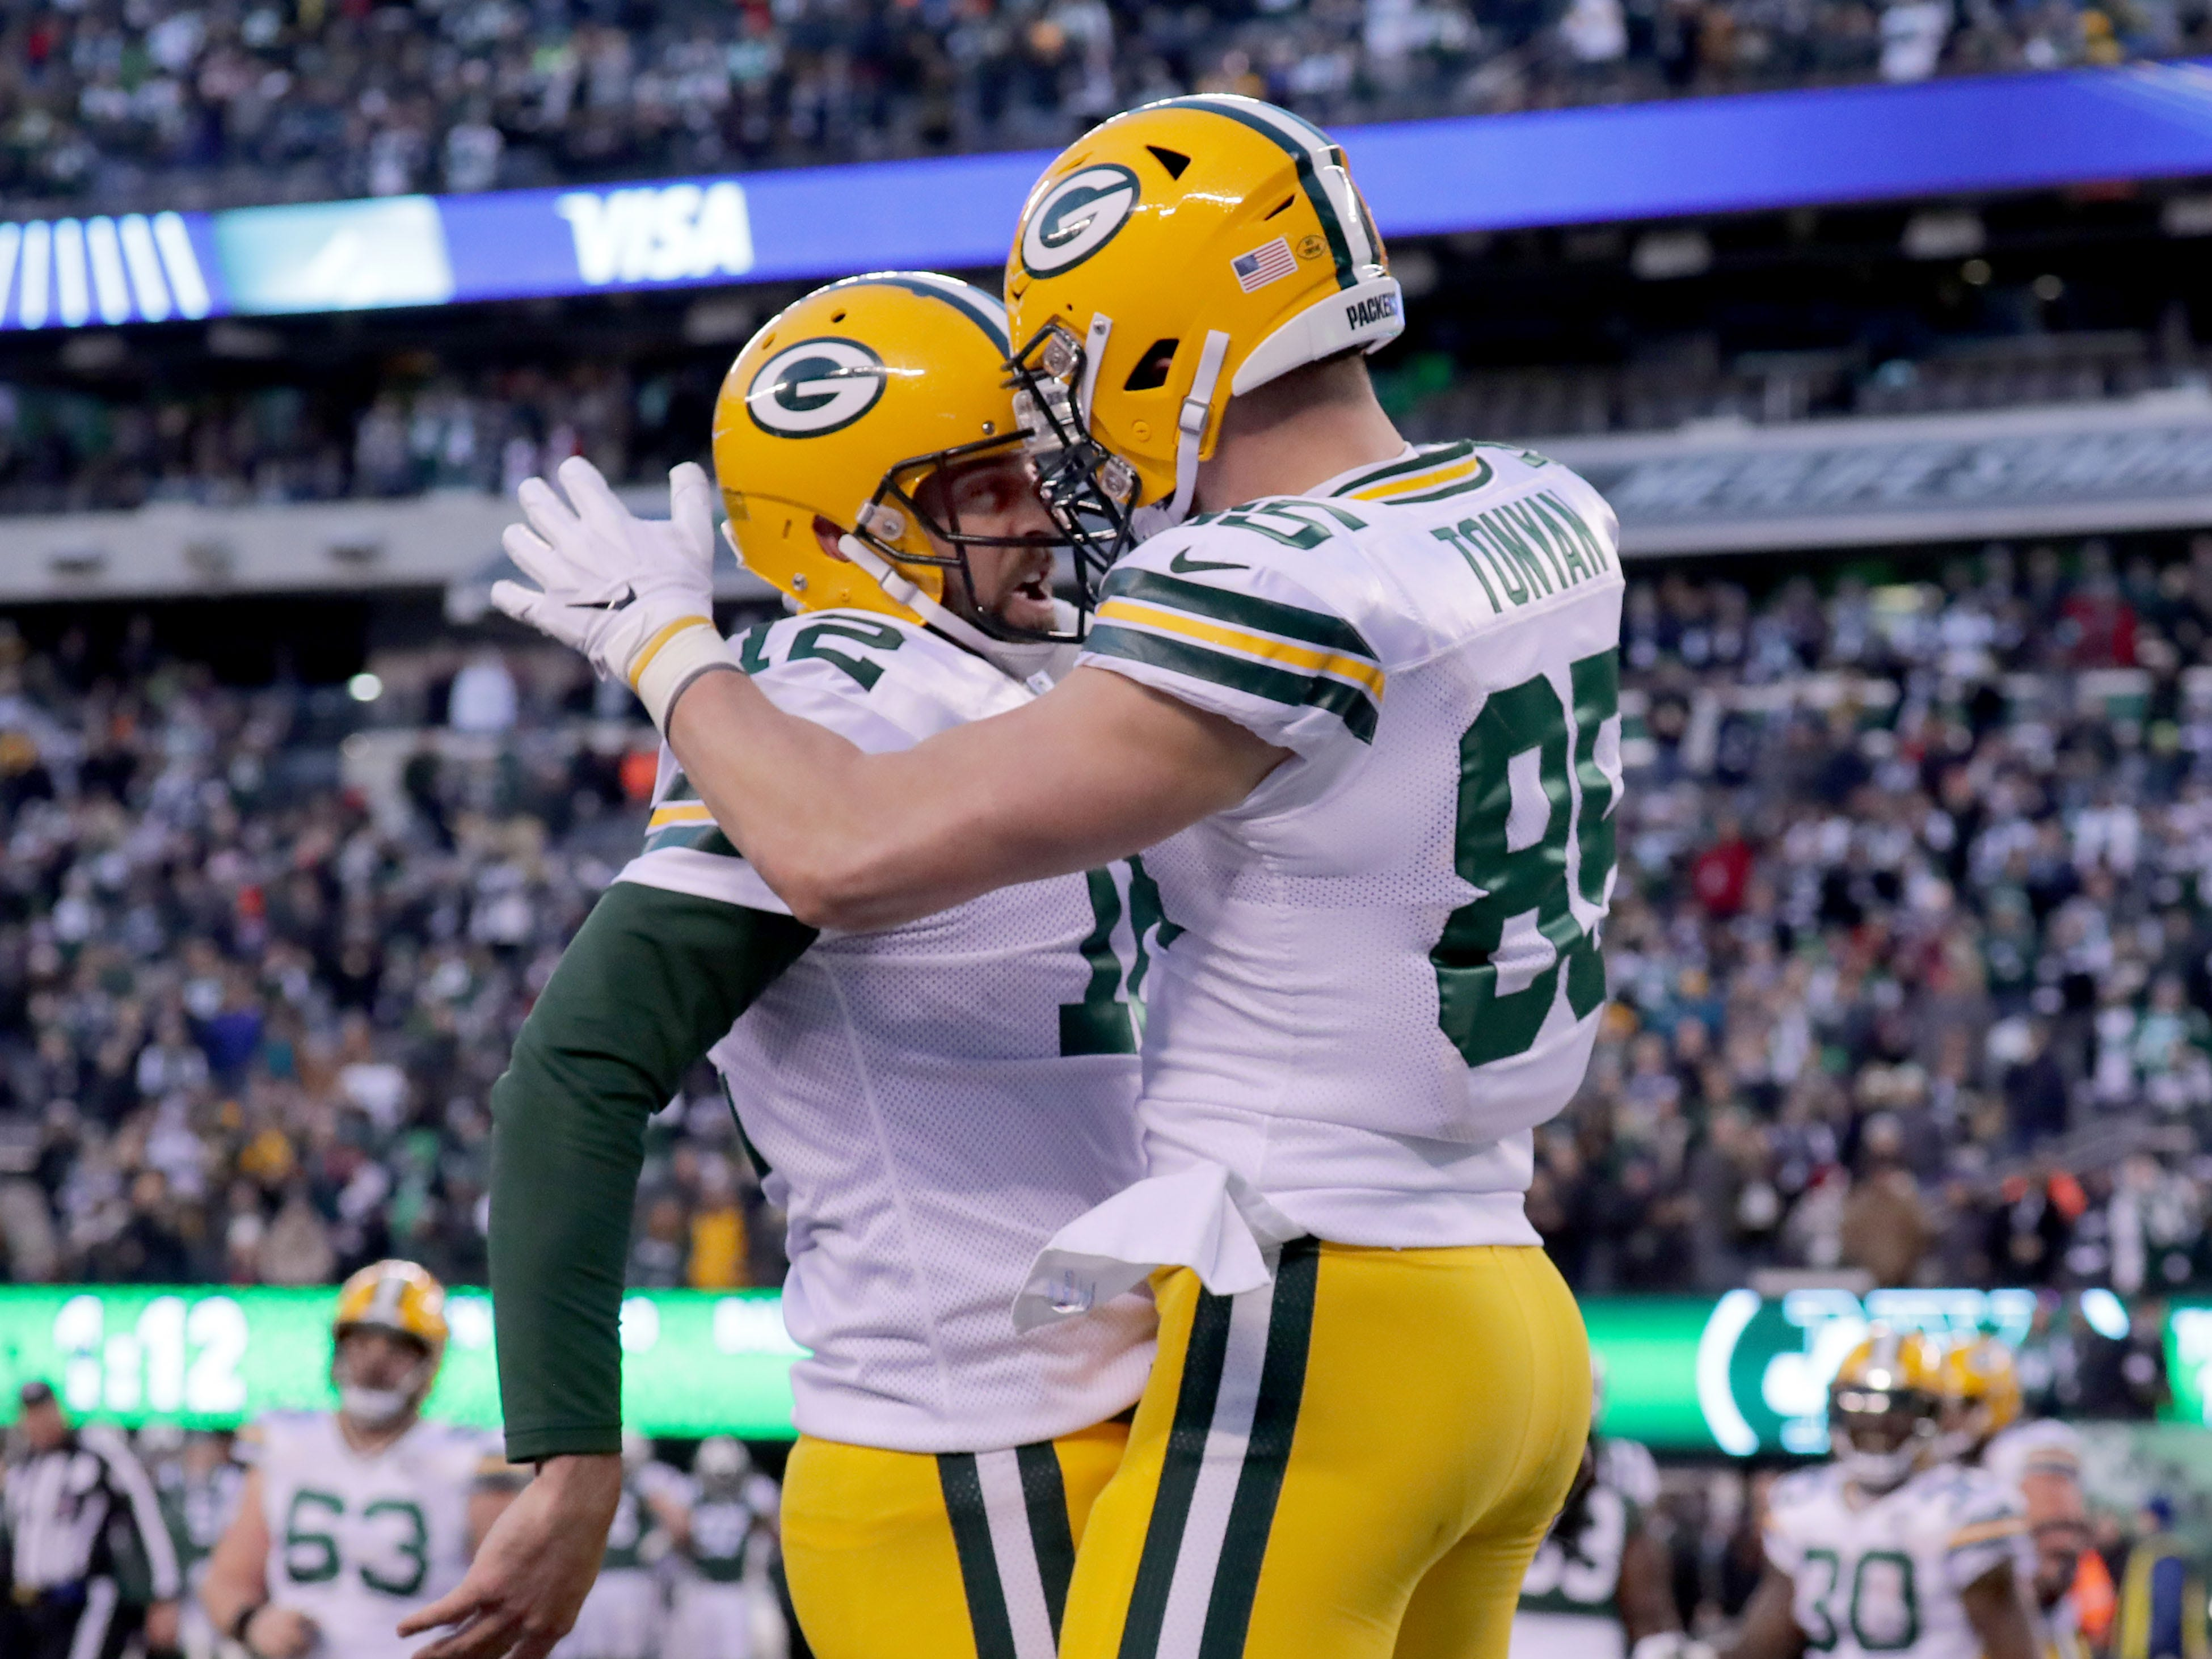 Green Bay Packers' Aaron Rodgers celebrates a 2-point conversion during the 2nd half of Packers 44-38 overtime win against the New York Jets at MetLife Stadium Sunday, Dec. 23, 2018, in East Rutherford.